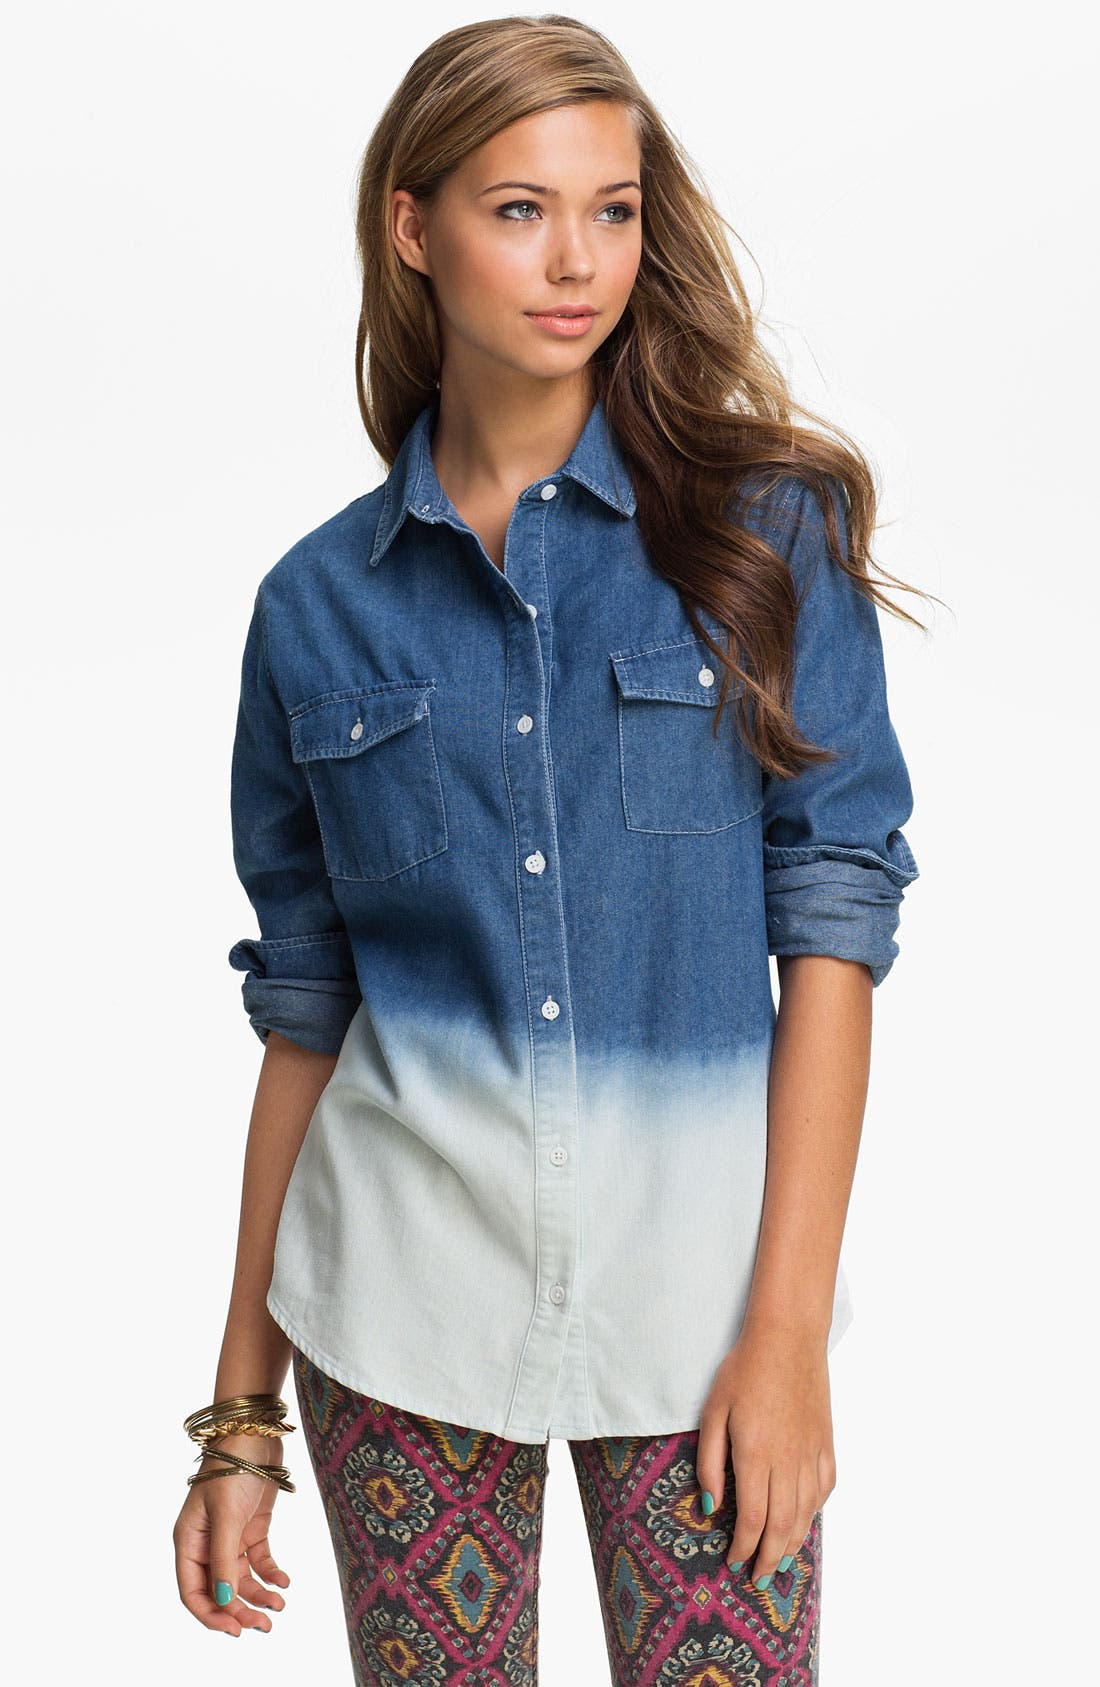 Alternate Image 1 Selected - Pretty Rebel Dip Dye Chambray Shirt (Juniors)